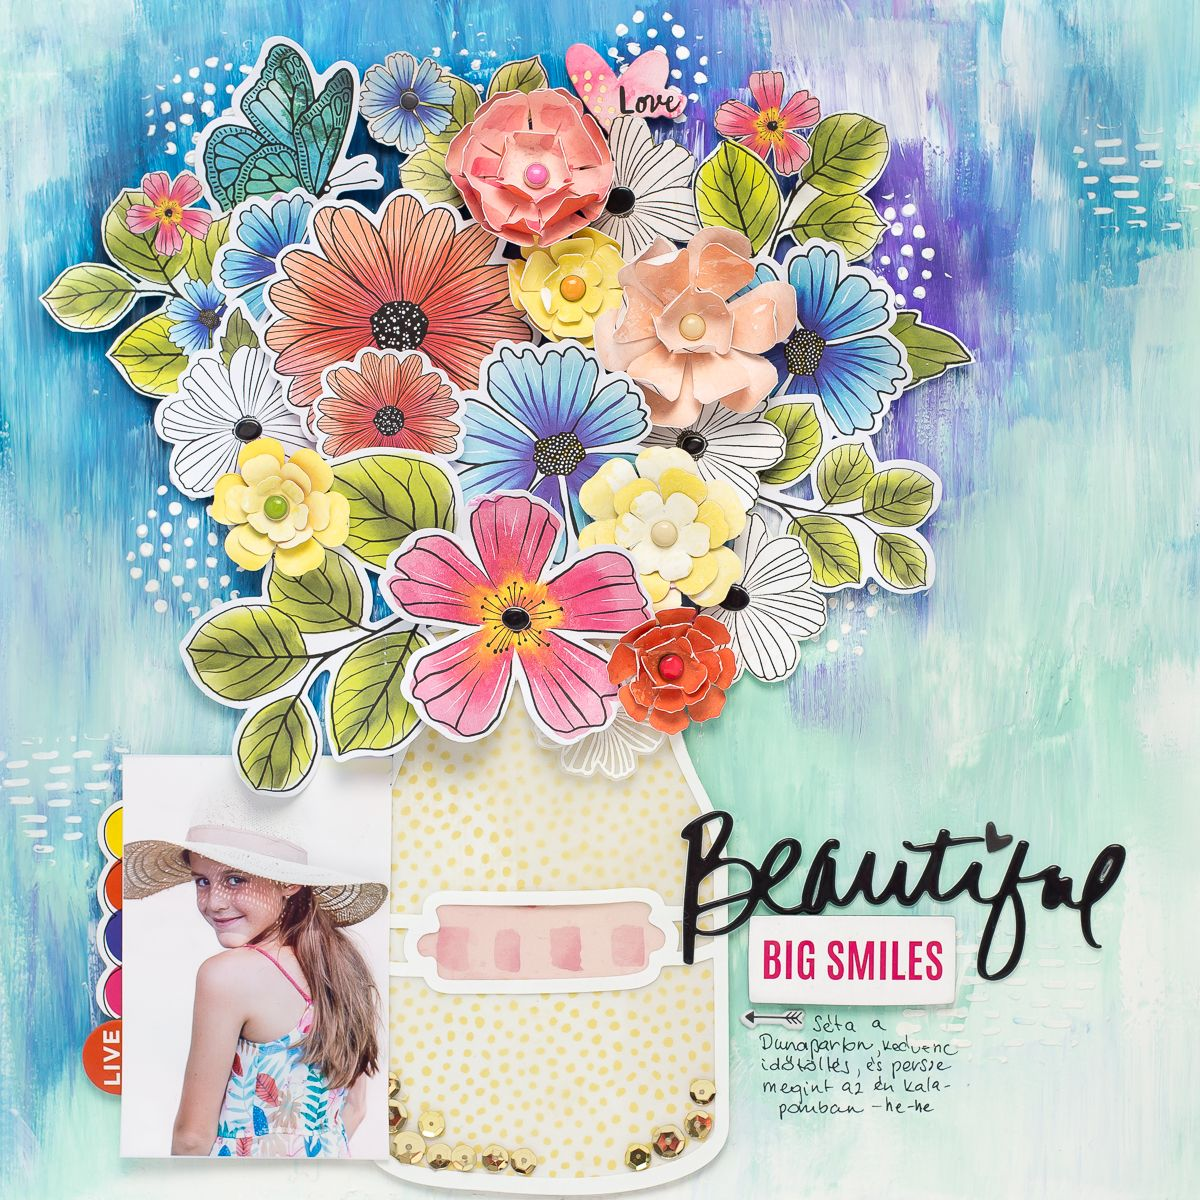 This Scrapbook Layout Is The Definition Of Mixed Media Goals